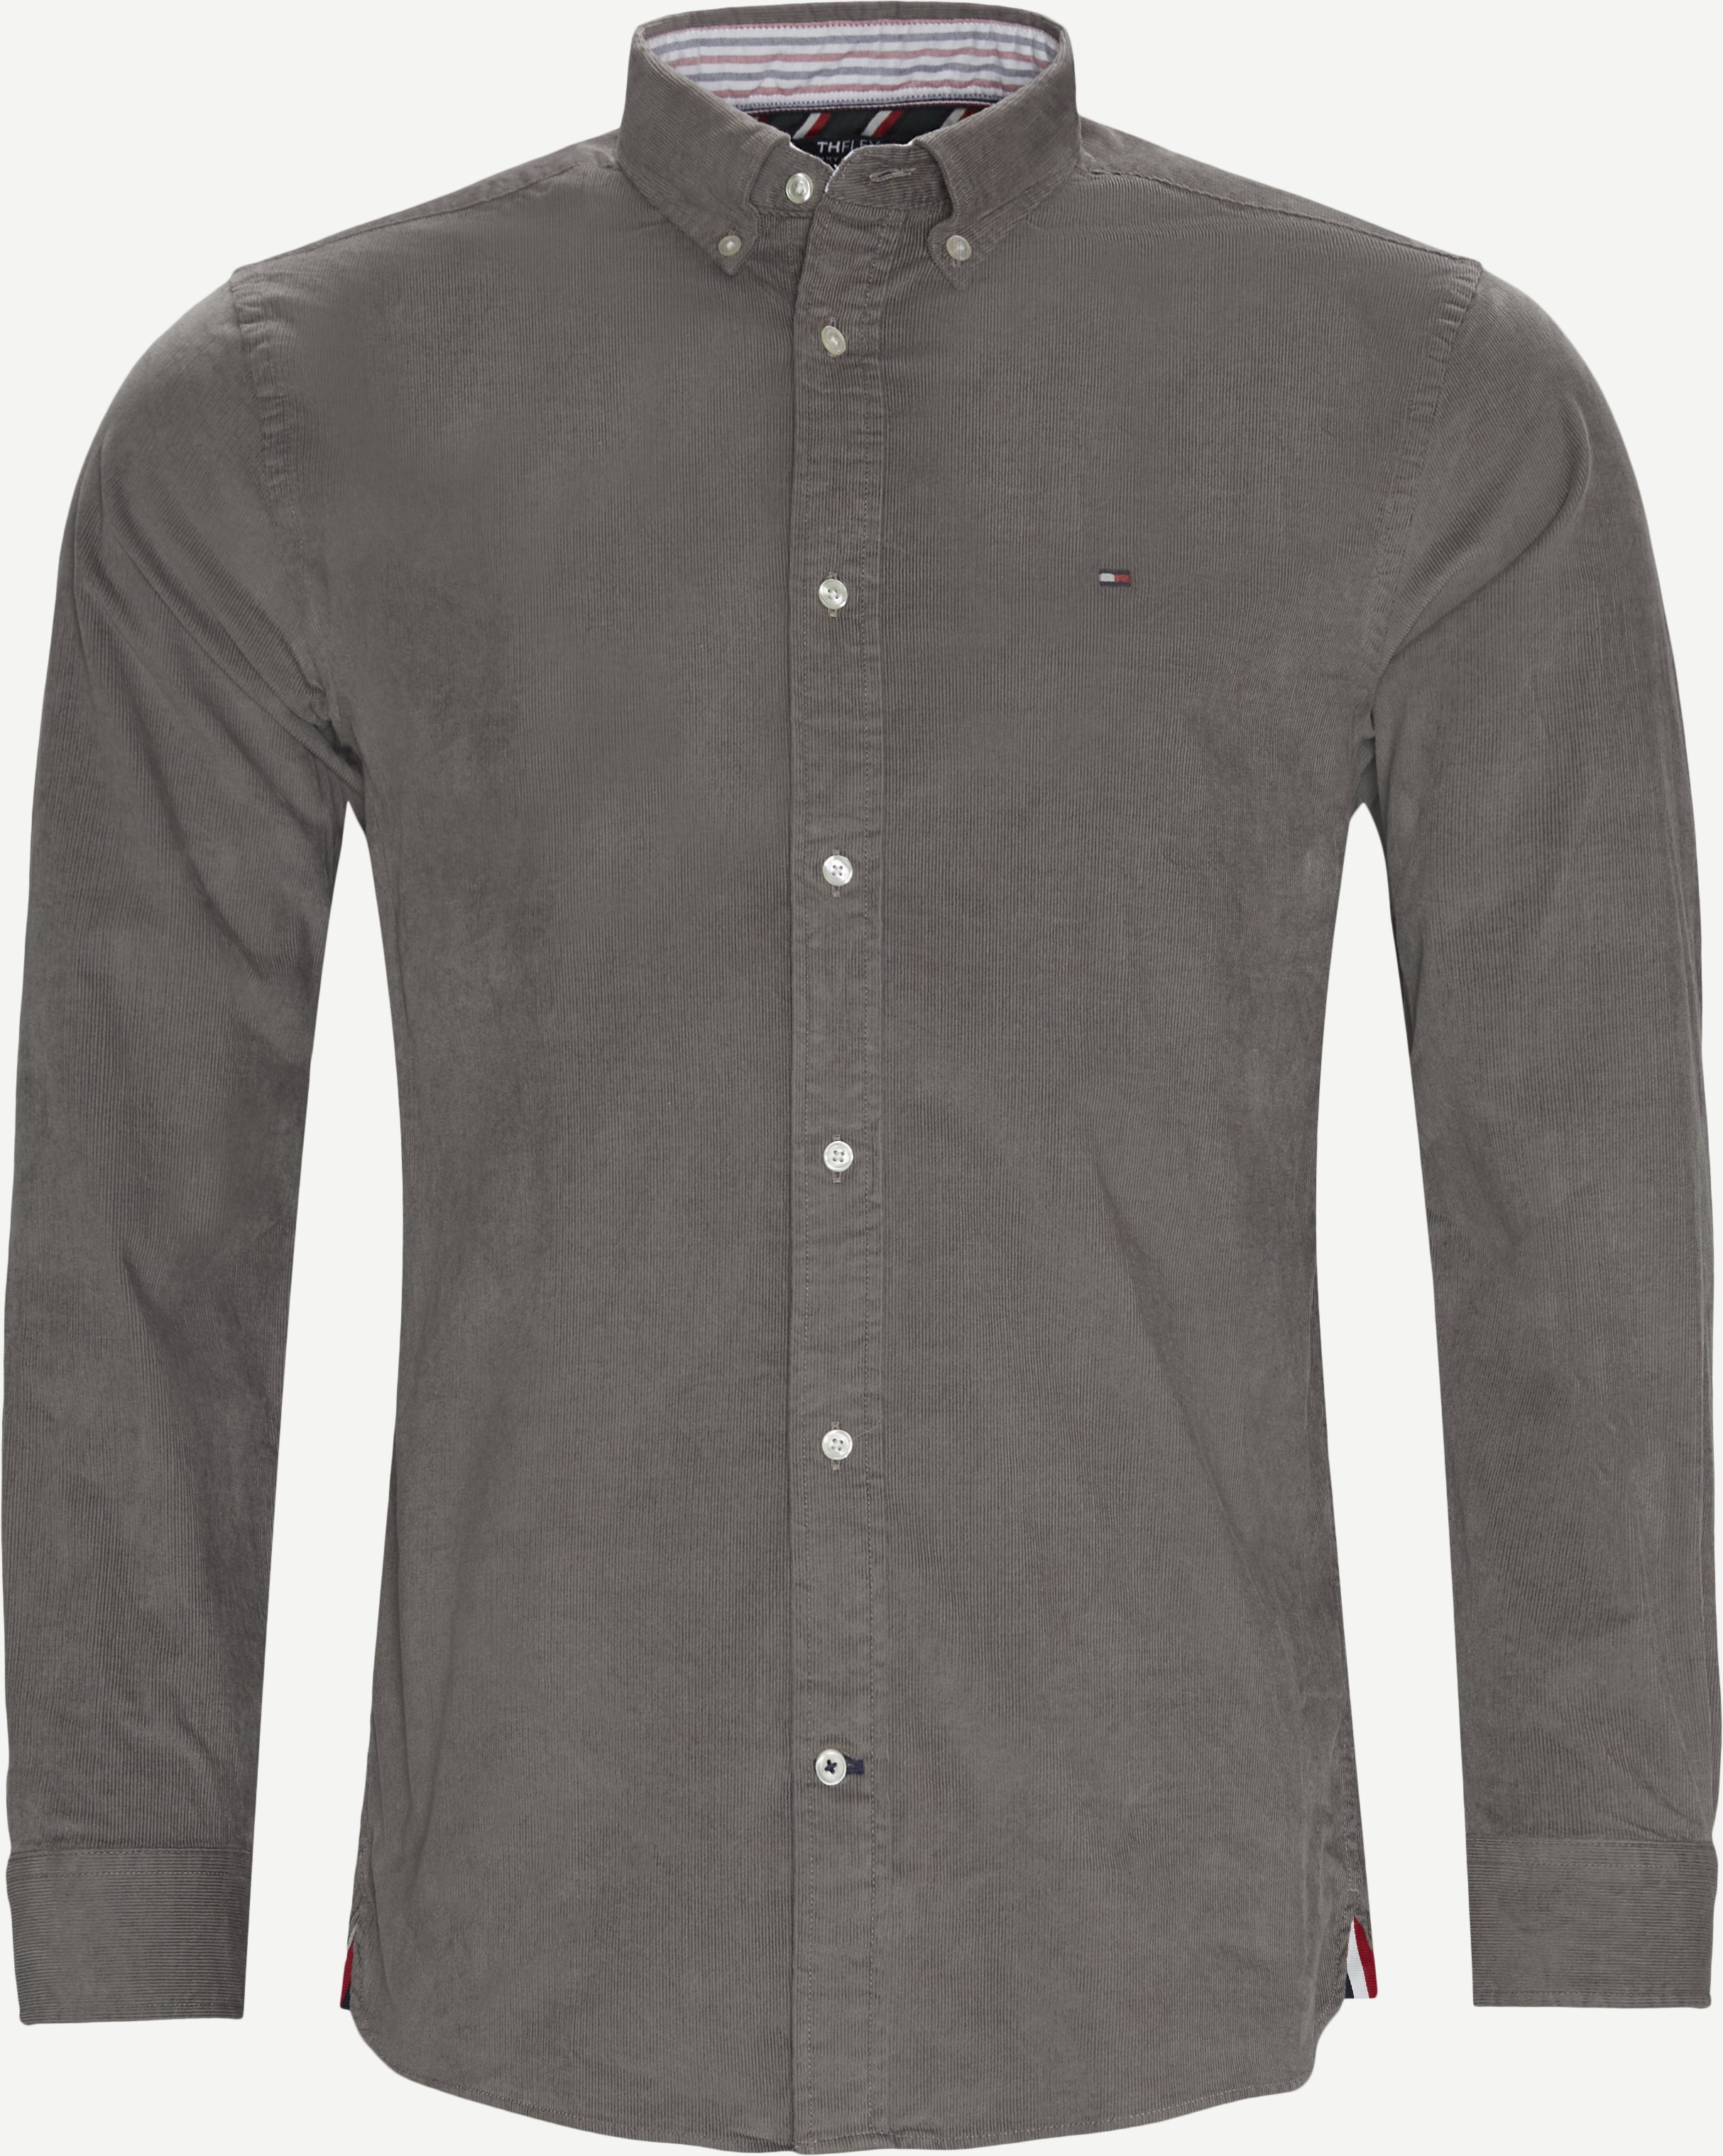 Flex Corduroy Shirt - Shirts - Regular - Grey